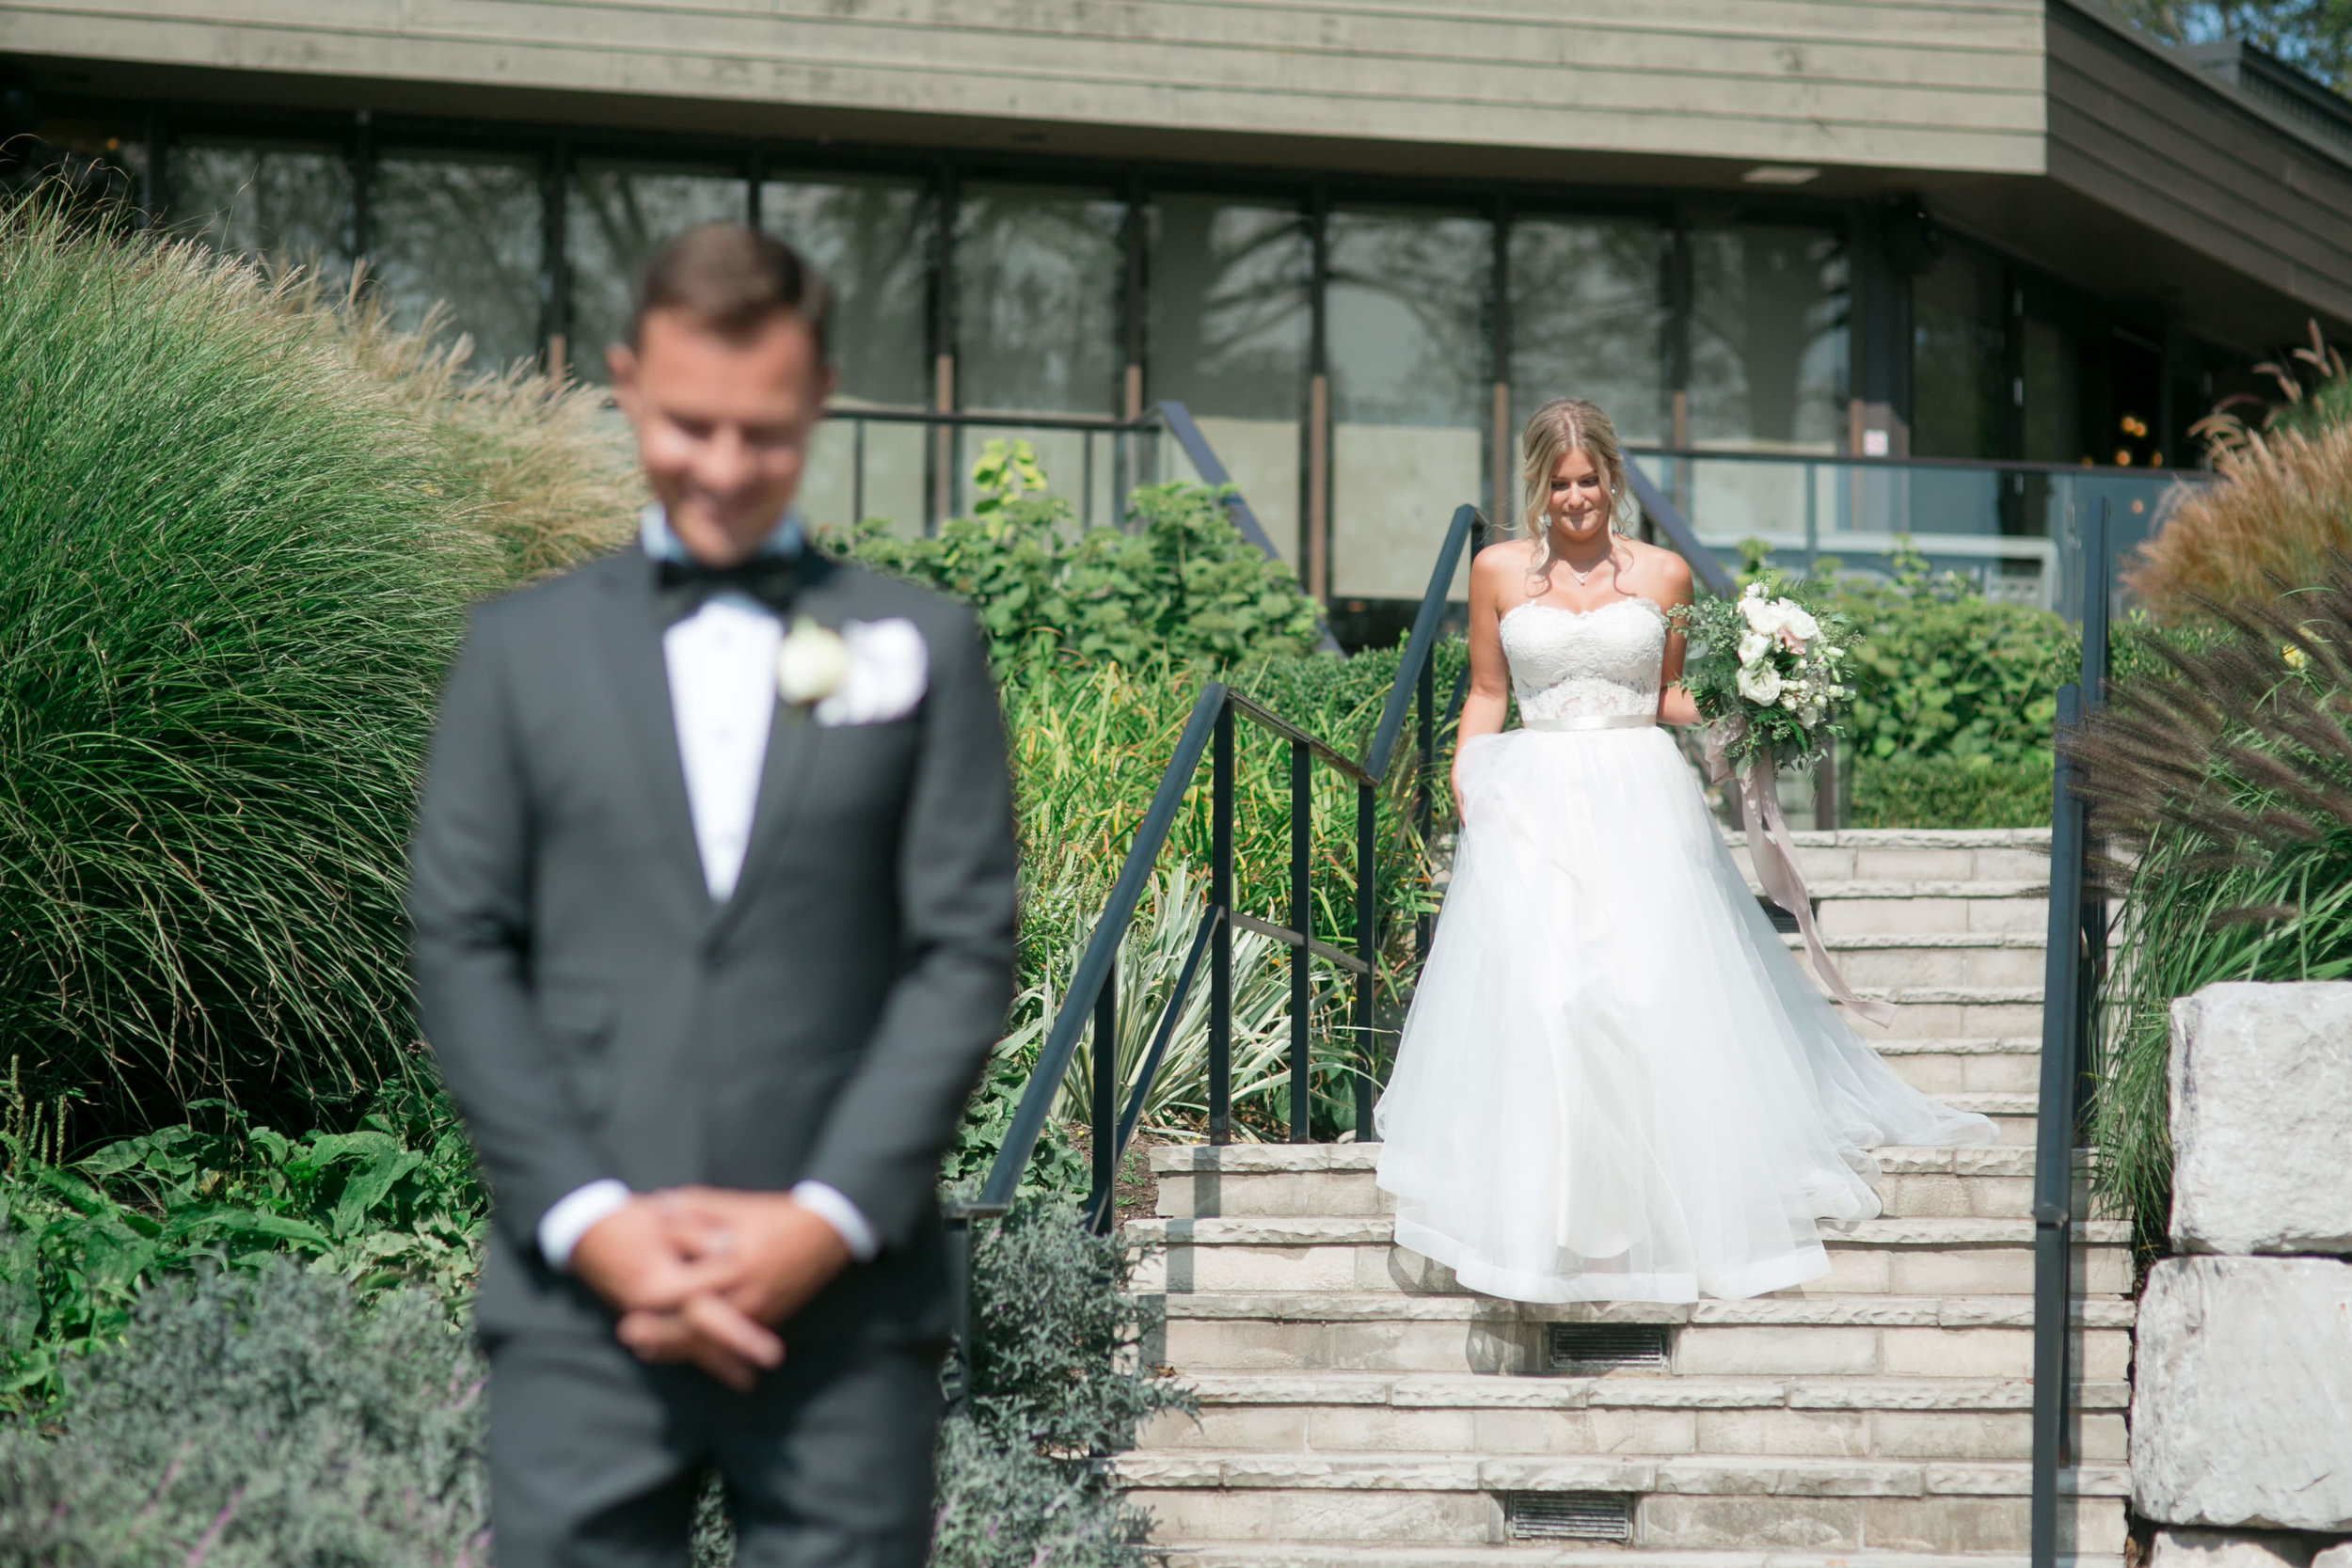 Kelsey___Daniel___High_Res_Finals___Daniel_Ricci_Weddings_156.jpg